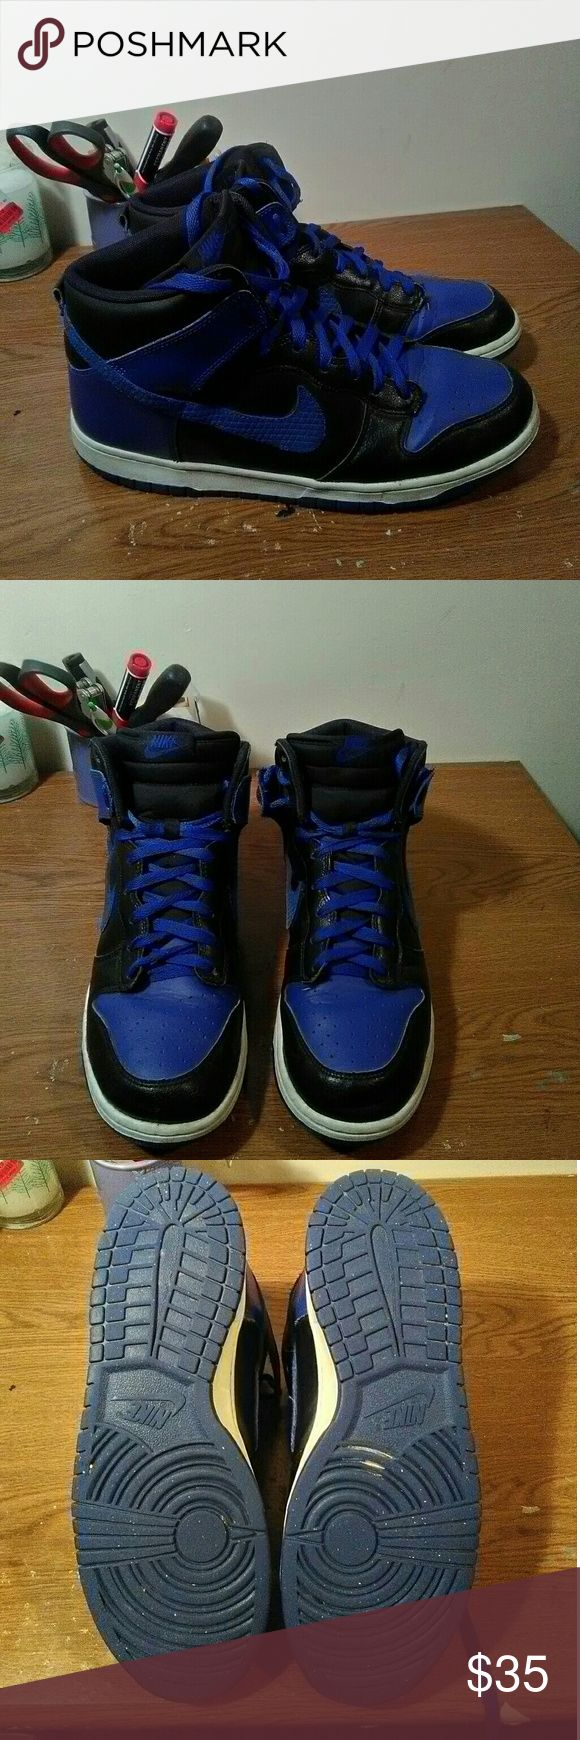 Nike Hi Top Size 11 in good condition. No box, 100% authentic, no trades Nike Shoes Sneakers